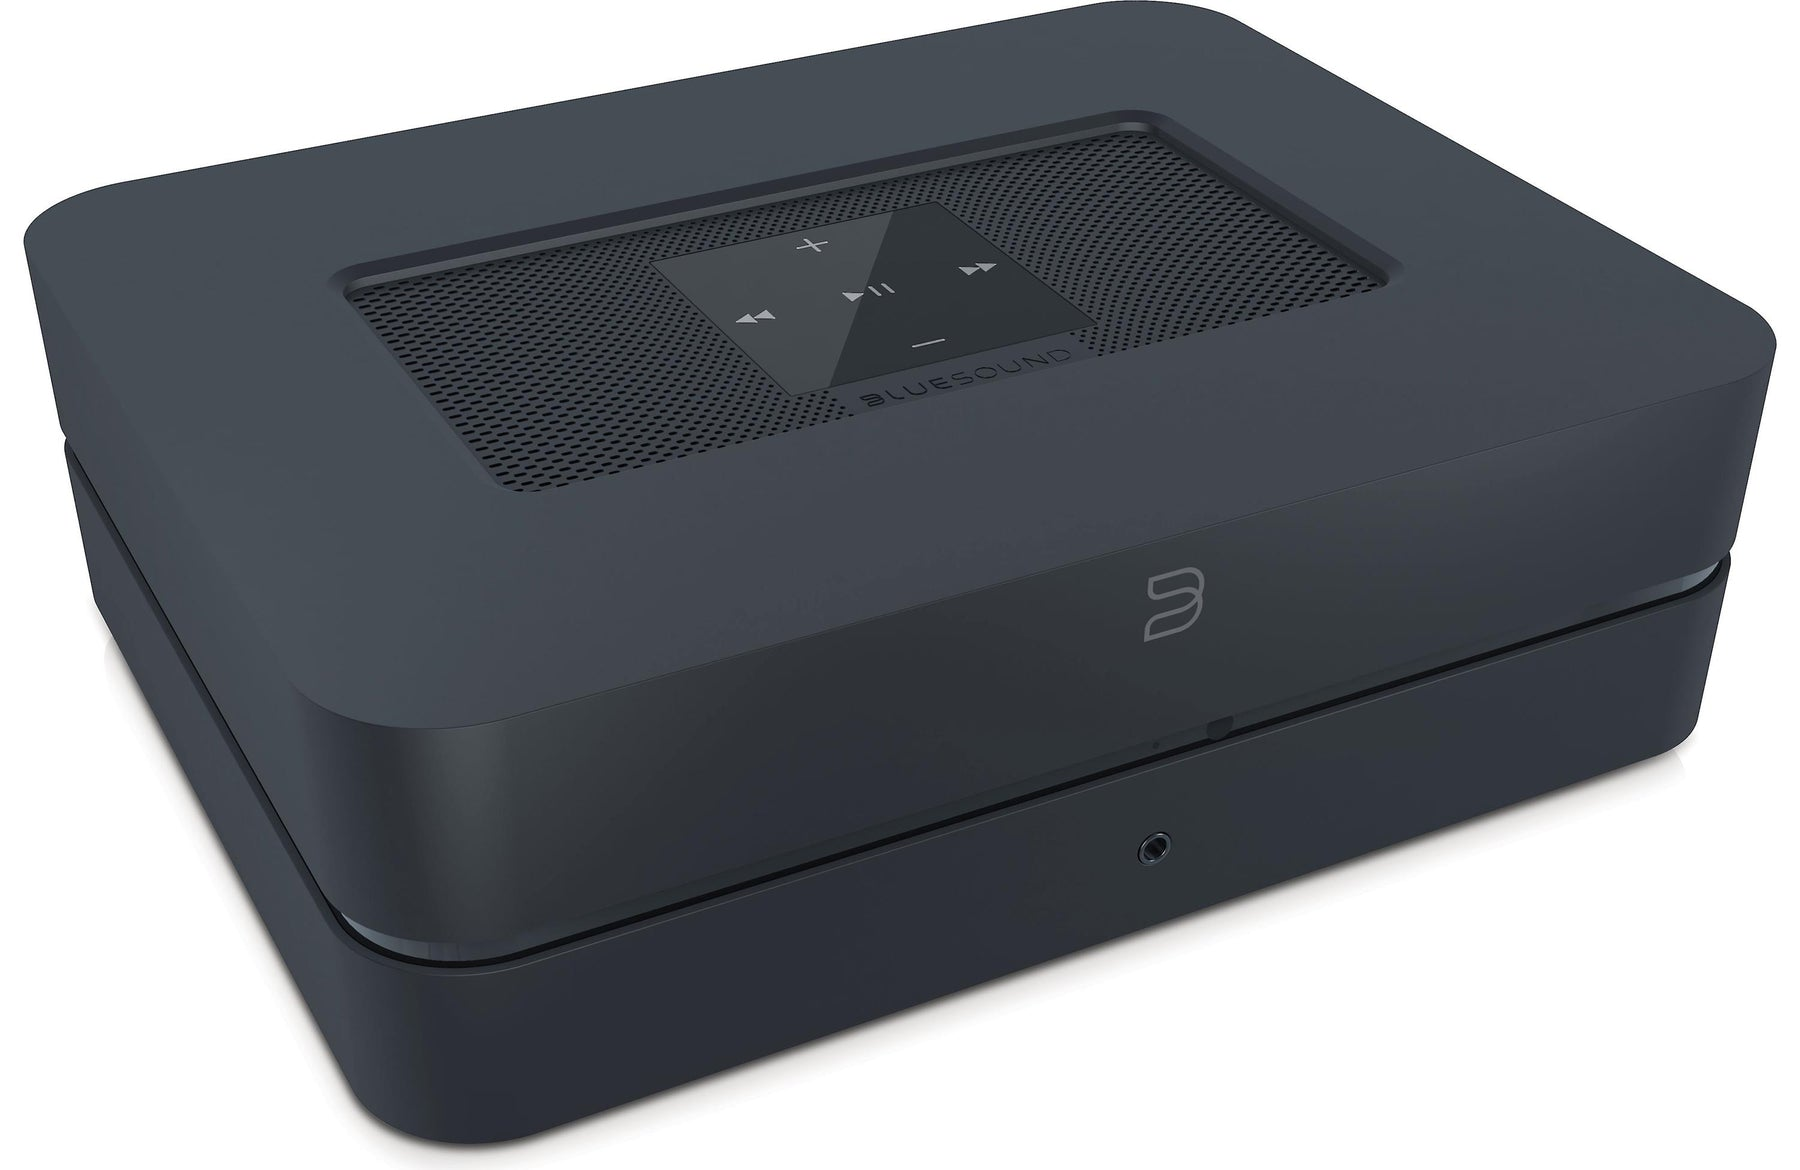 Bluesound Power NODE 2 Streaming Music Player with Built-In Stereo Amplifier, Wi-Fi, and Bluetooth - Safe and Sound HQ